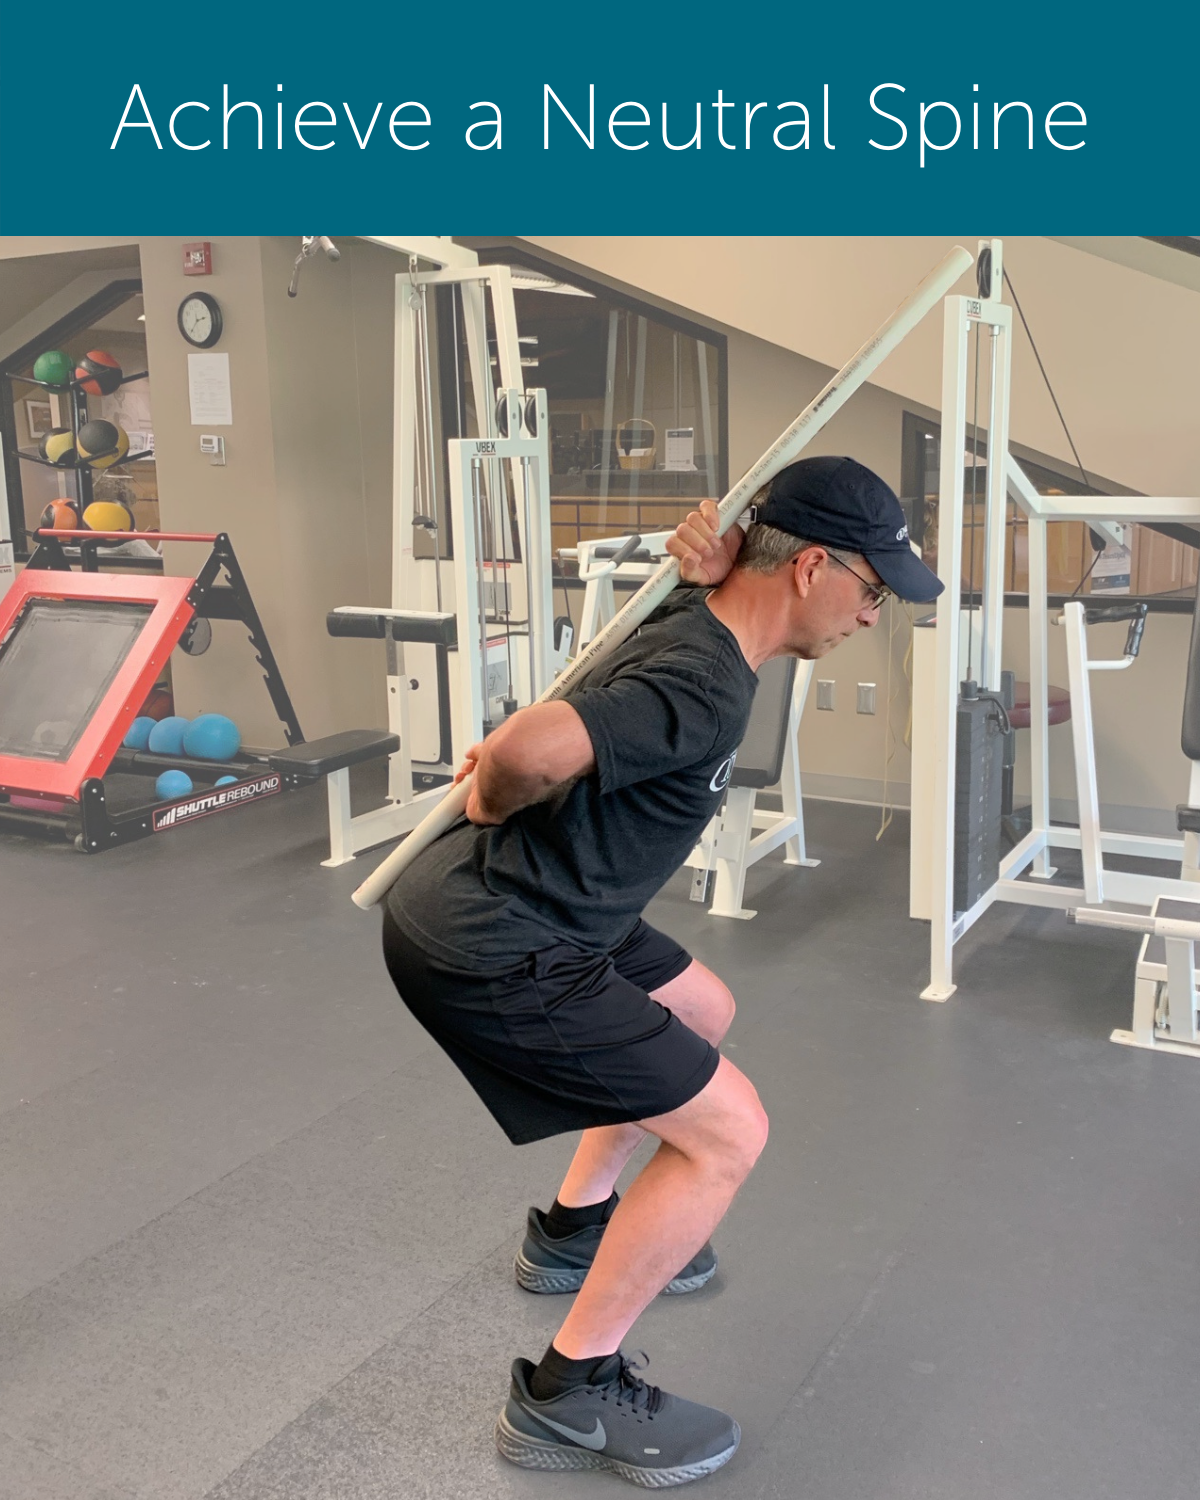 Orthopedic Institute Physical Therapist demonstrates how to achieve a neutral spine using a pole to promote good form when hip hinging (bending) or squatting.